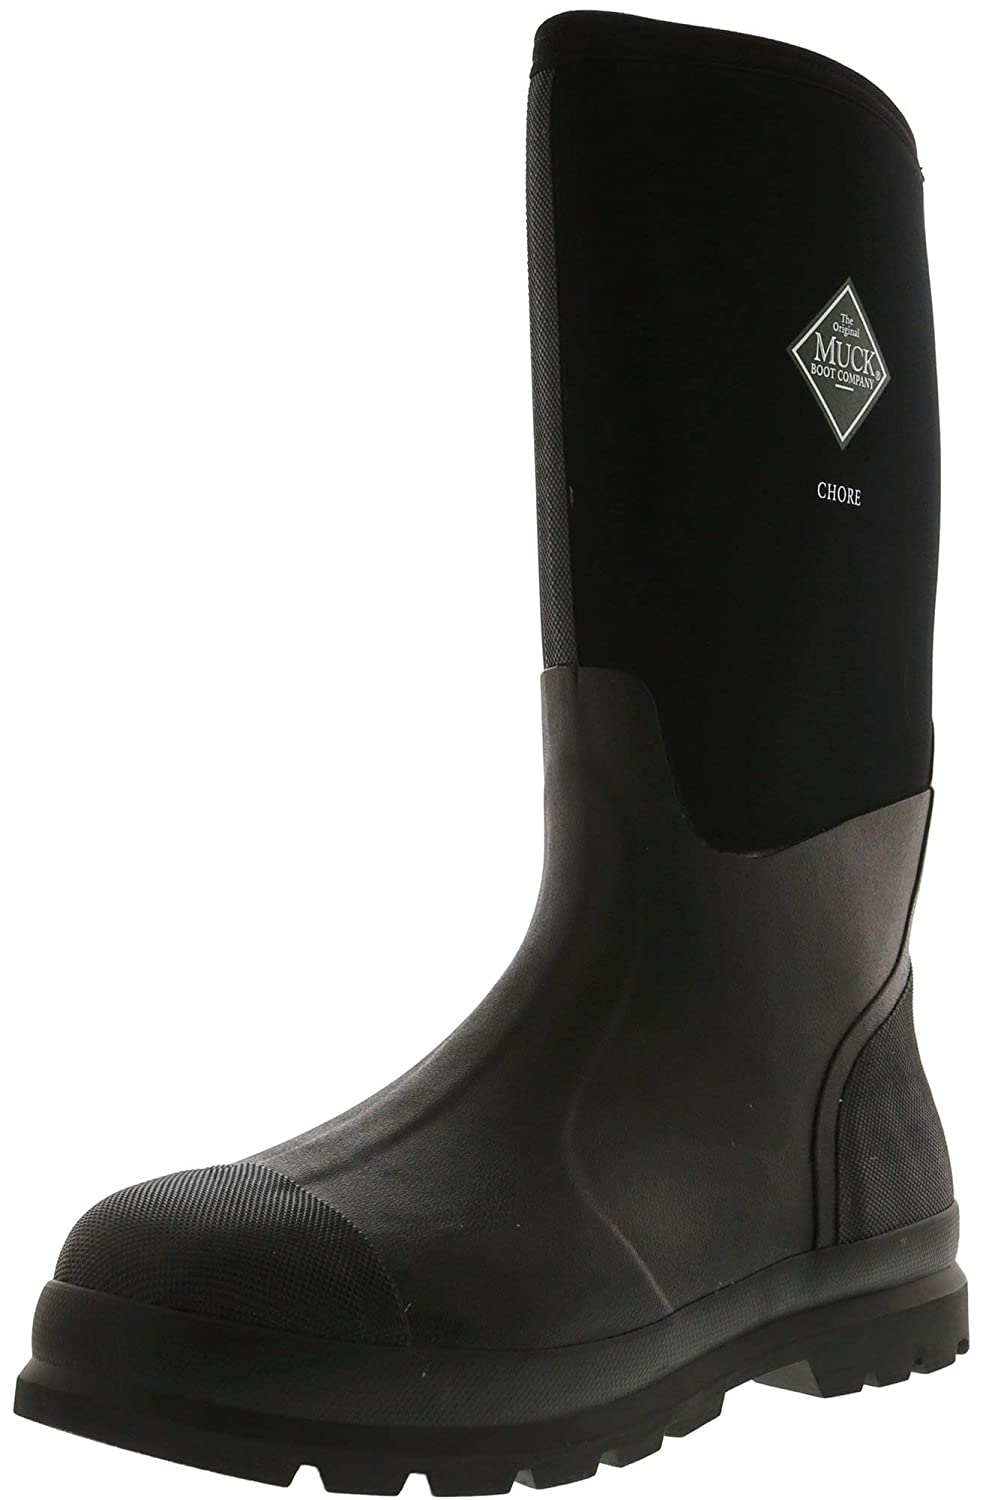 2792efe15a4 Muck Boots Mens Chore Hi Wateproof Rubber Work Boot, Black, 11,  CHH-000A-BL-110